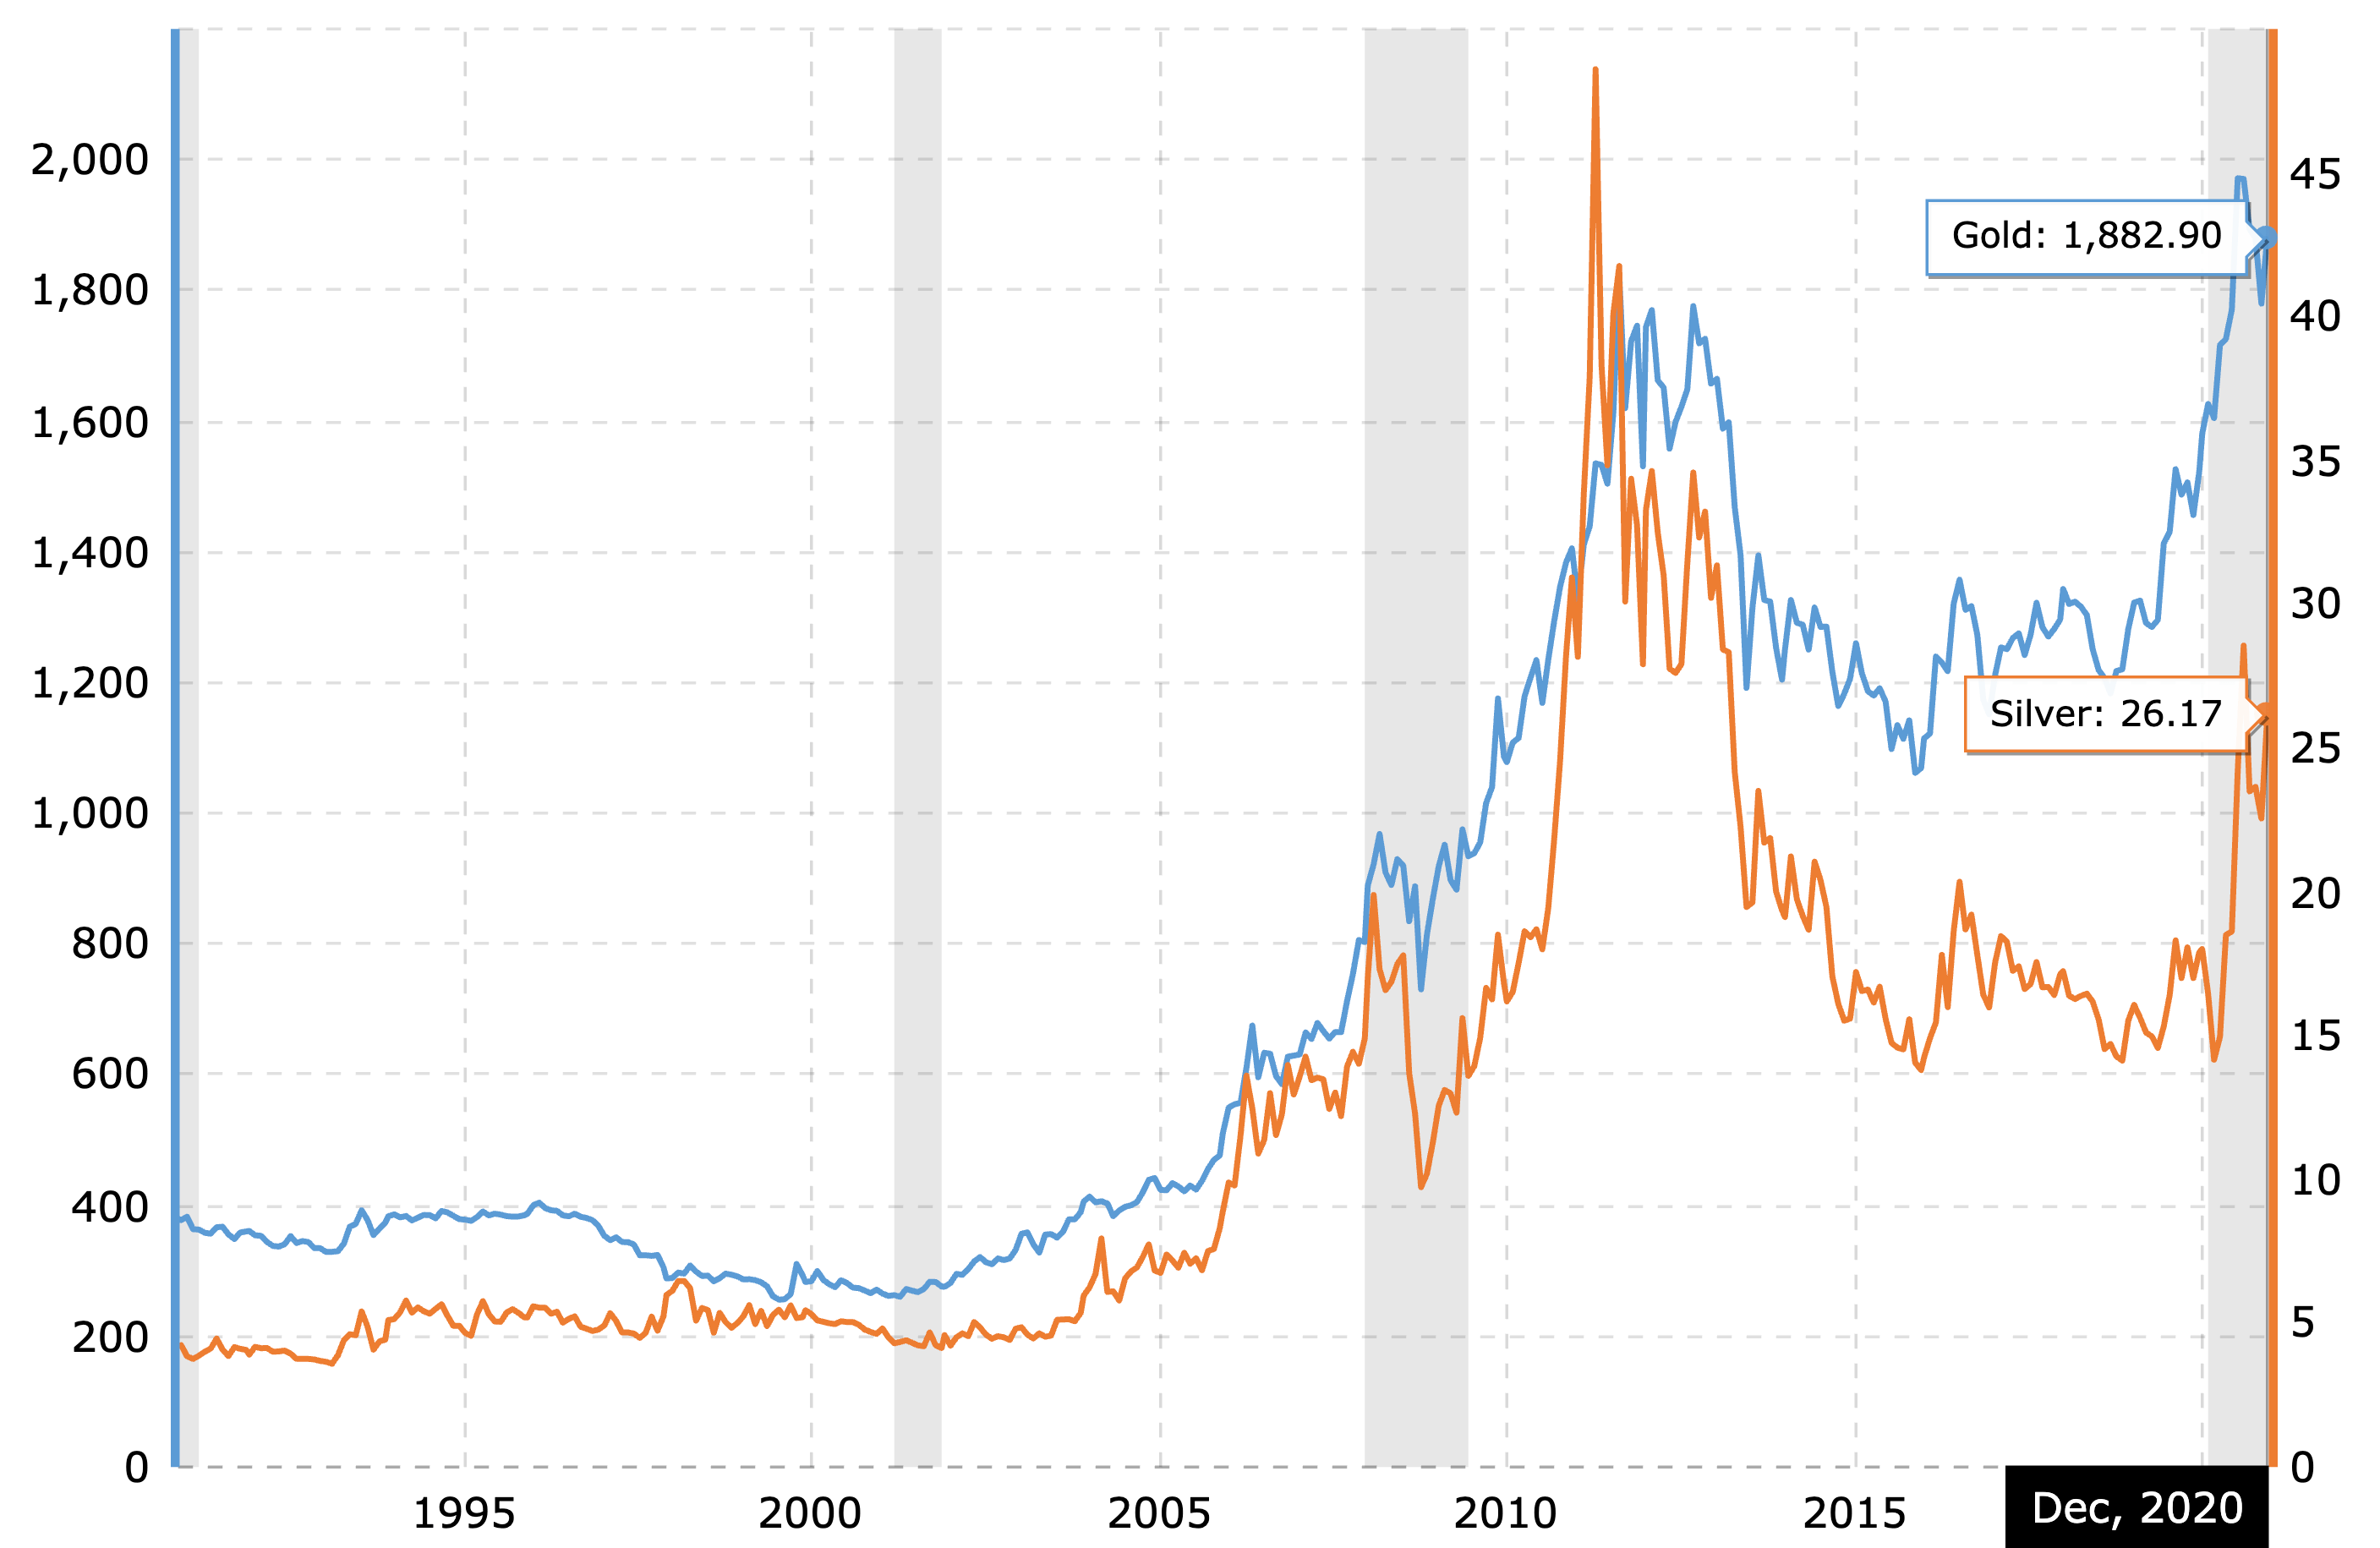 Silver prices vs Gold - nominal prices over the last 20 years as of December 2020.